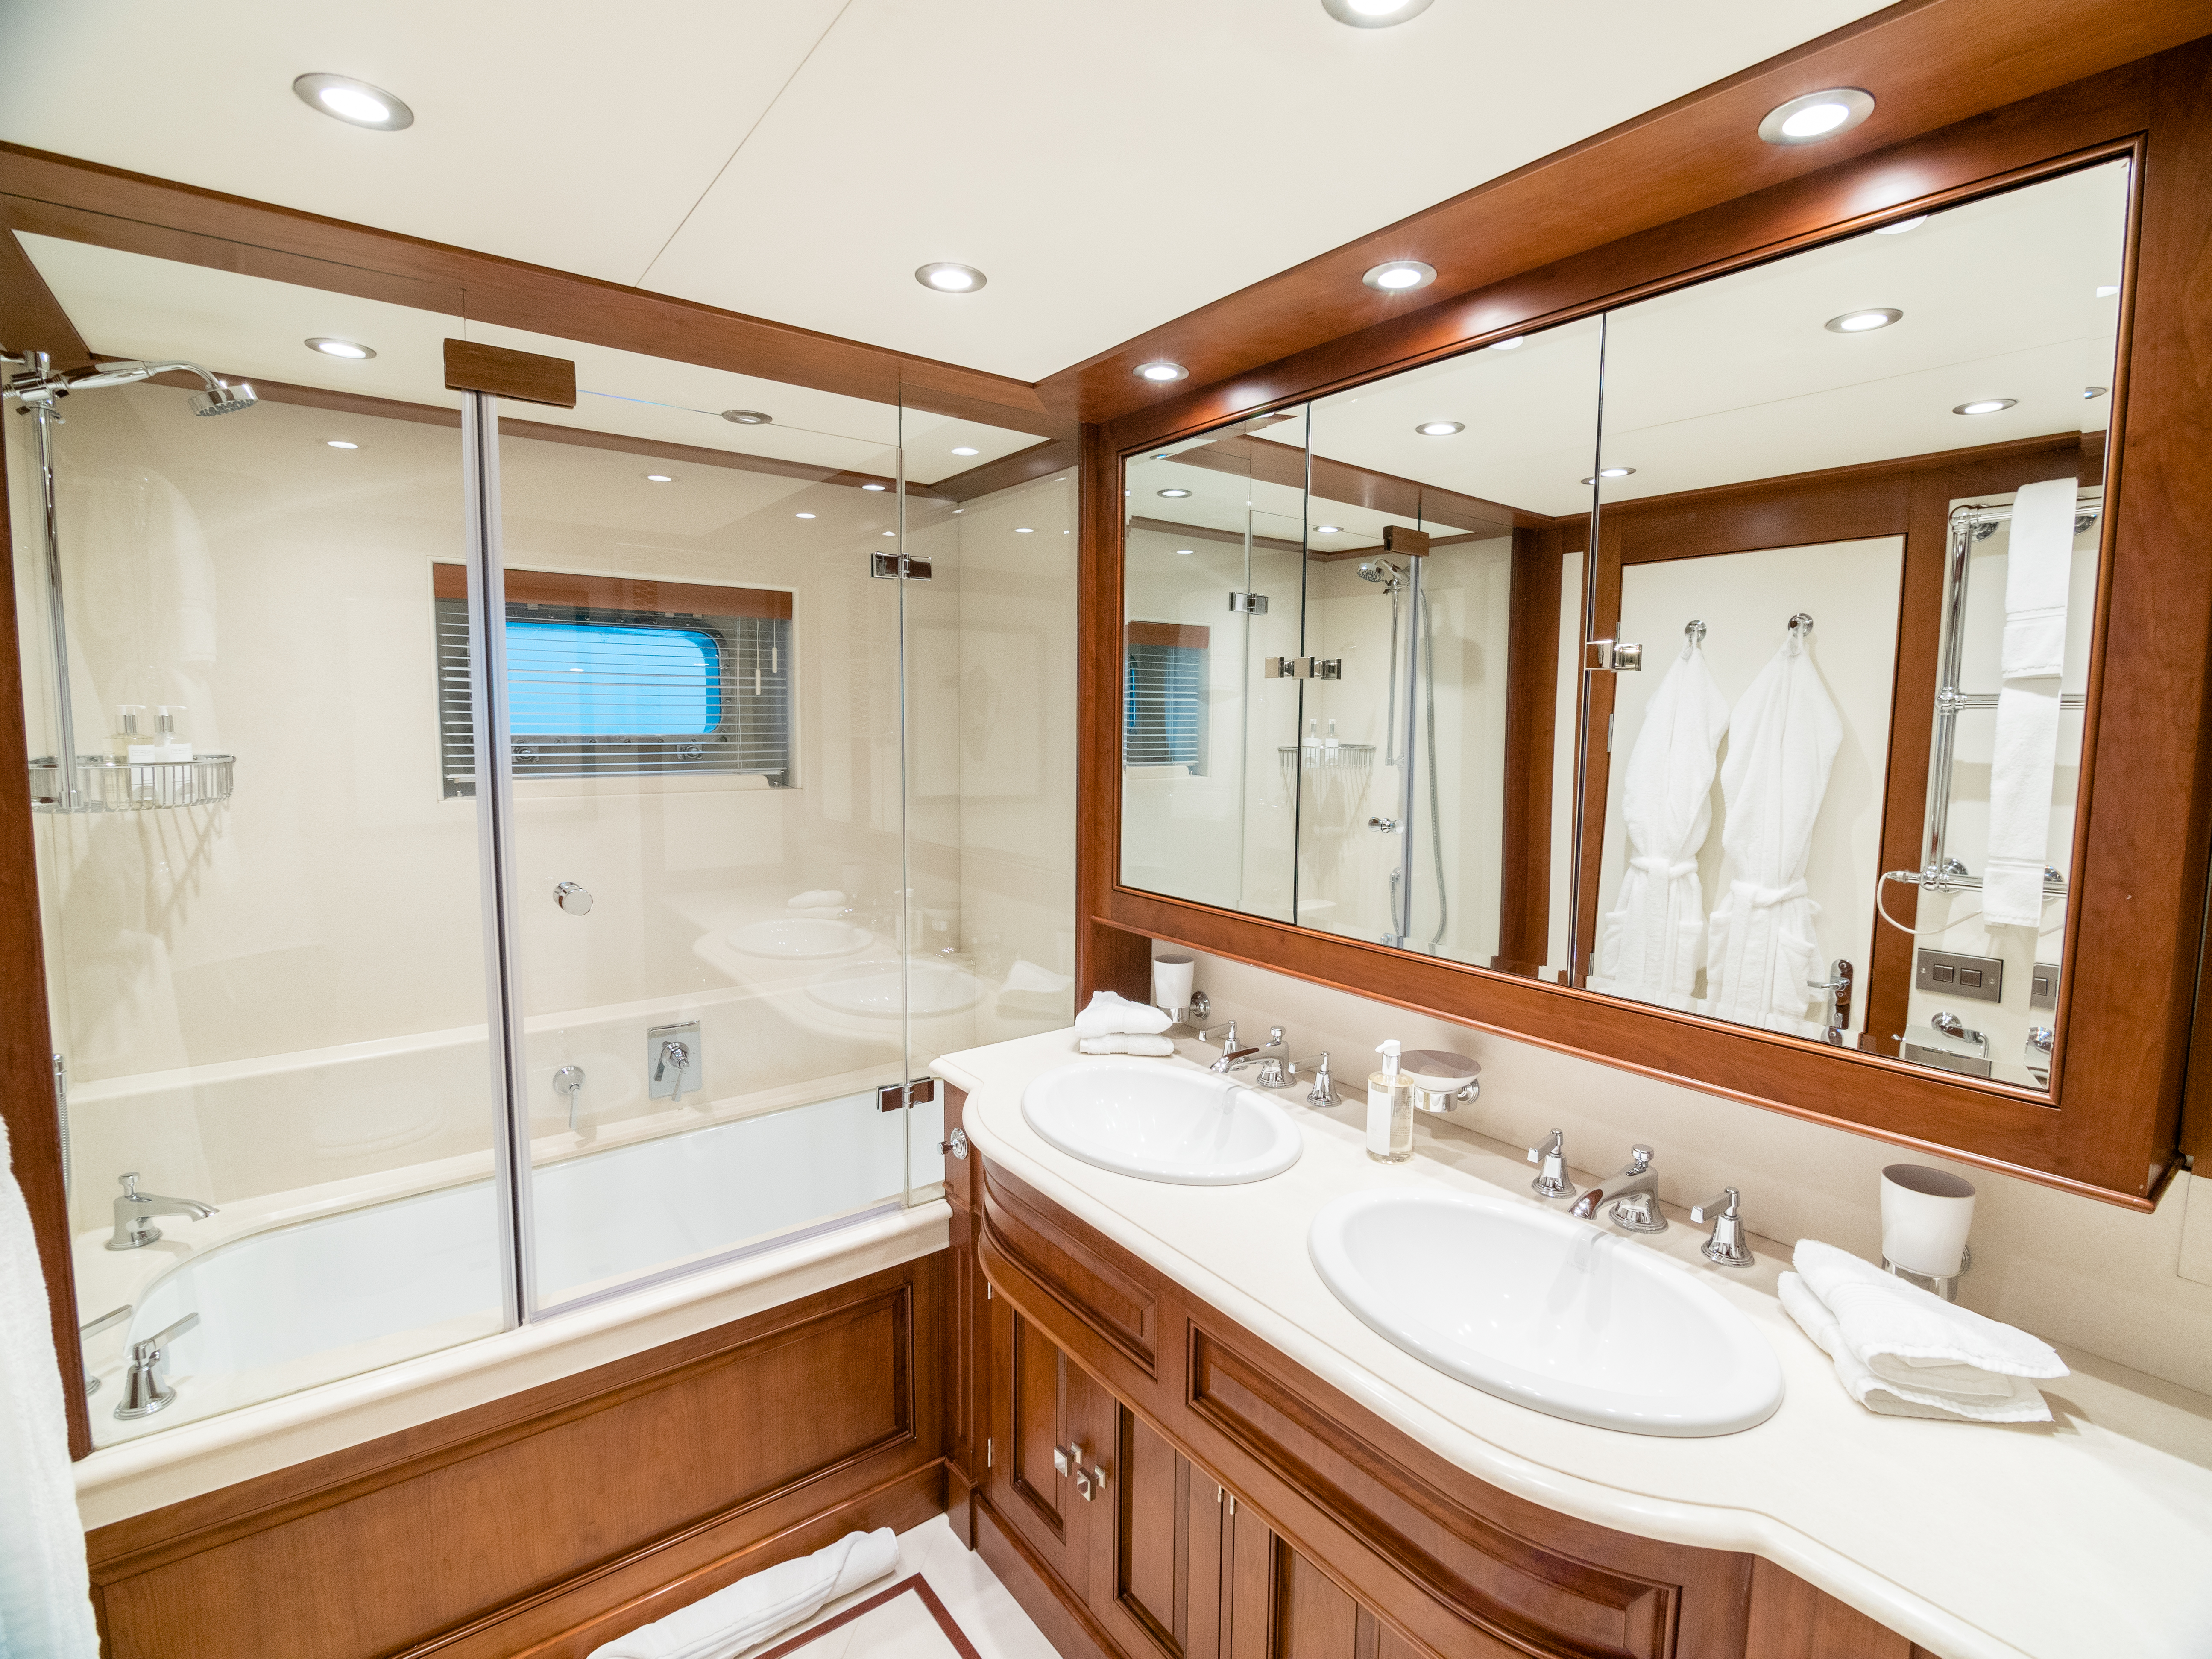 Ensuite Bathroom With His And Hers Sink